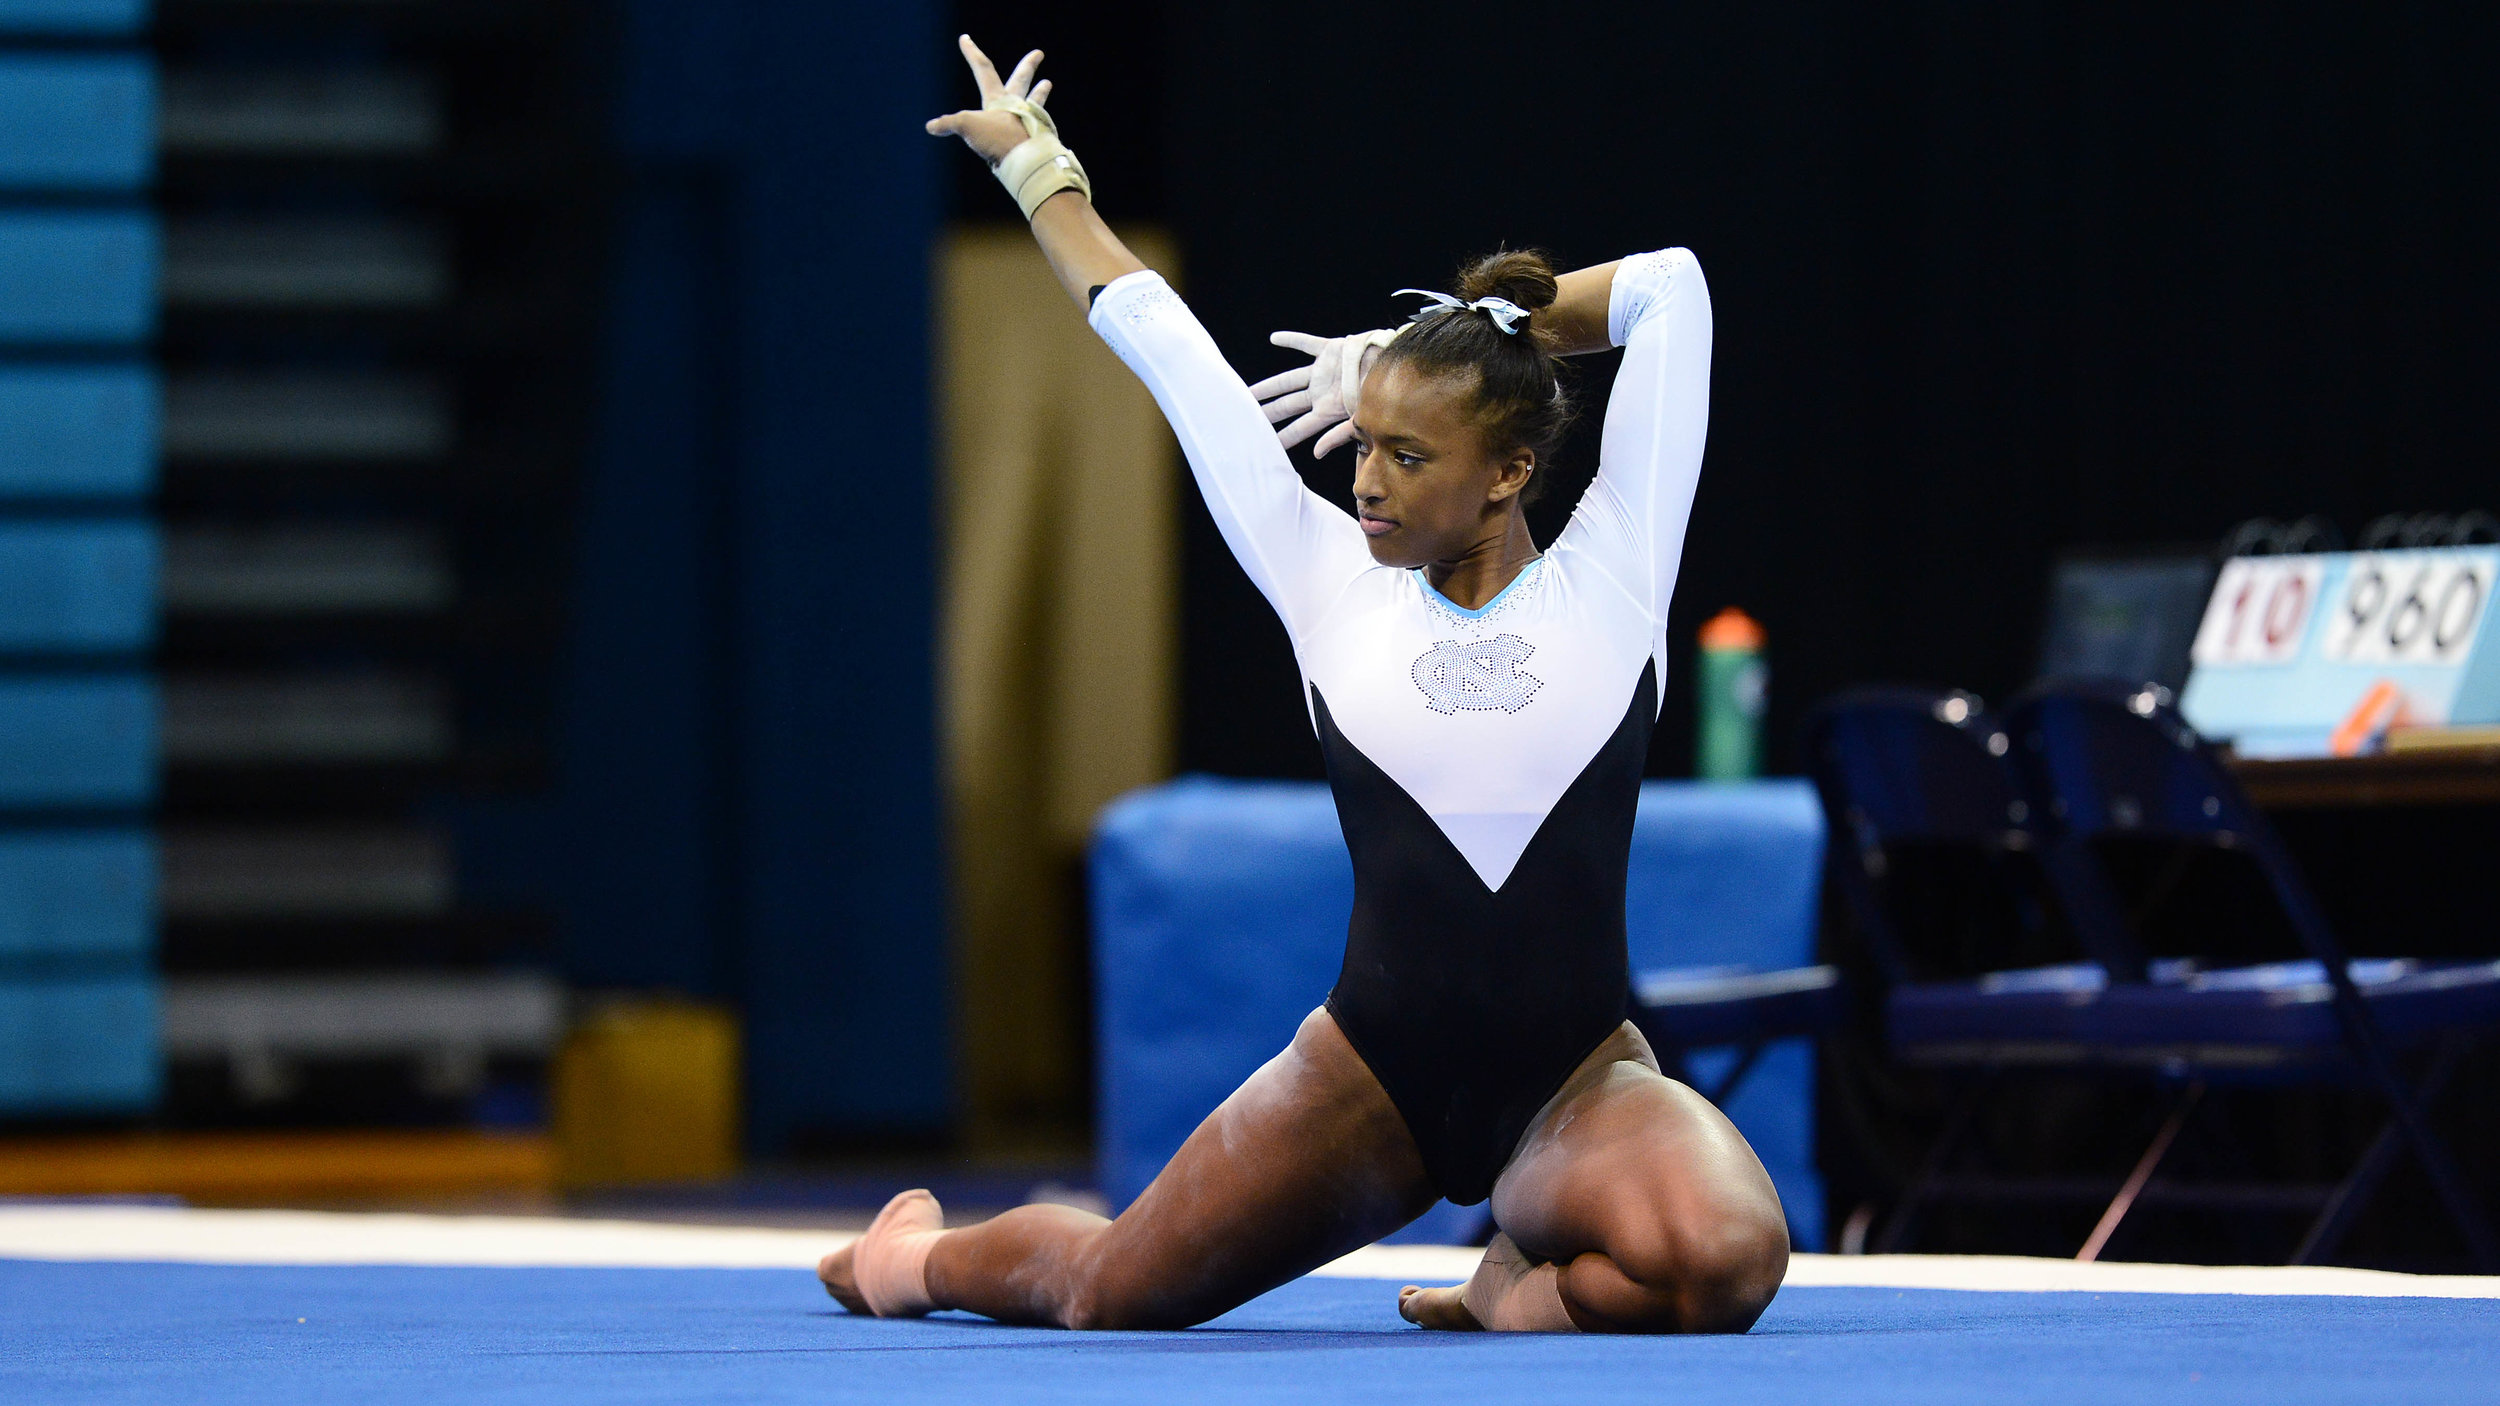 Sophomore Khazia Hislop earned scores of 9.825, 9.850 and 9.800 on the vault, beam and floor, respectively. Hislop scored a 9.95 last weekend on the floor, earning a perfect 10 from a judge   Photo by Jeffrey Camarati